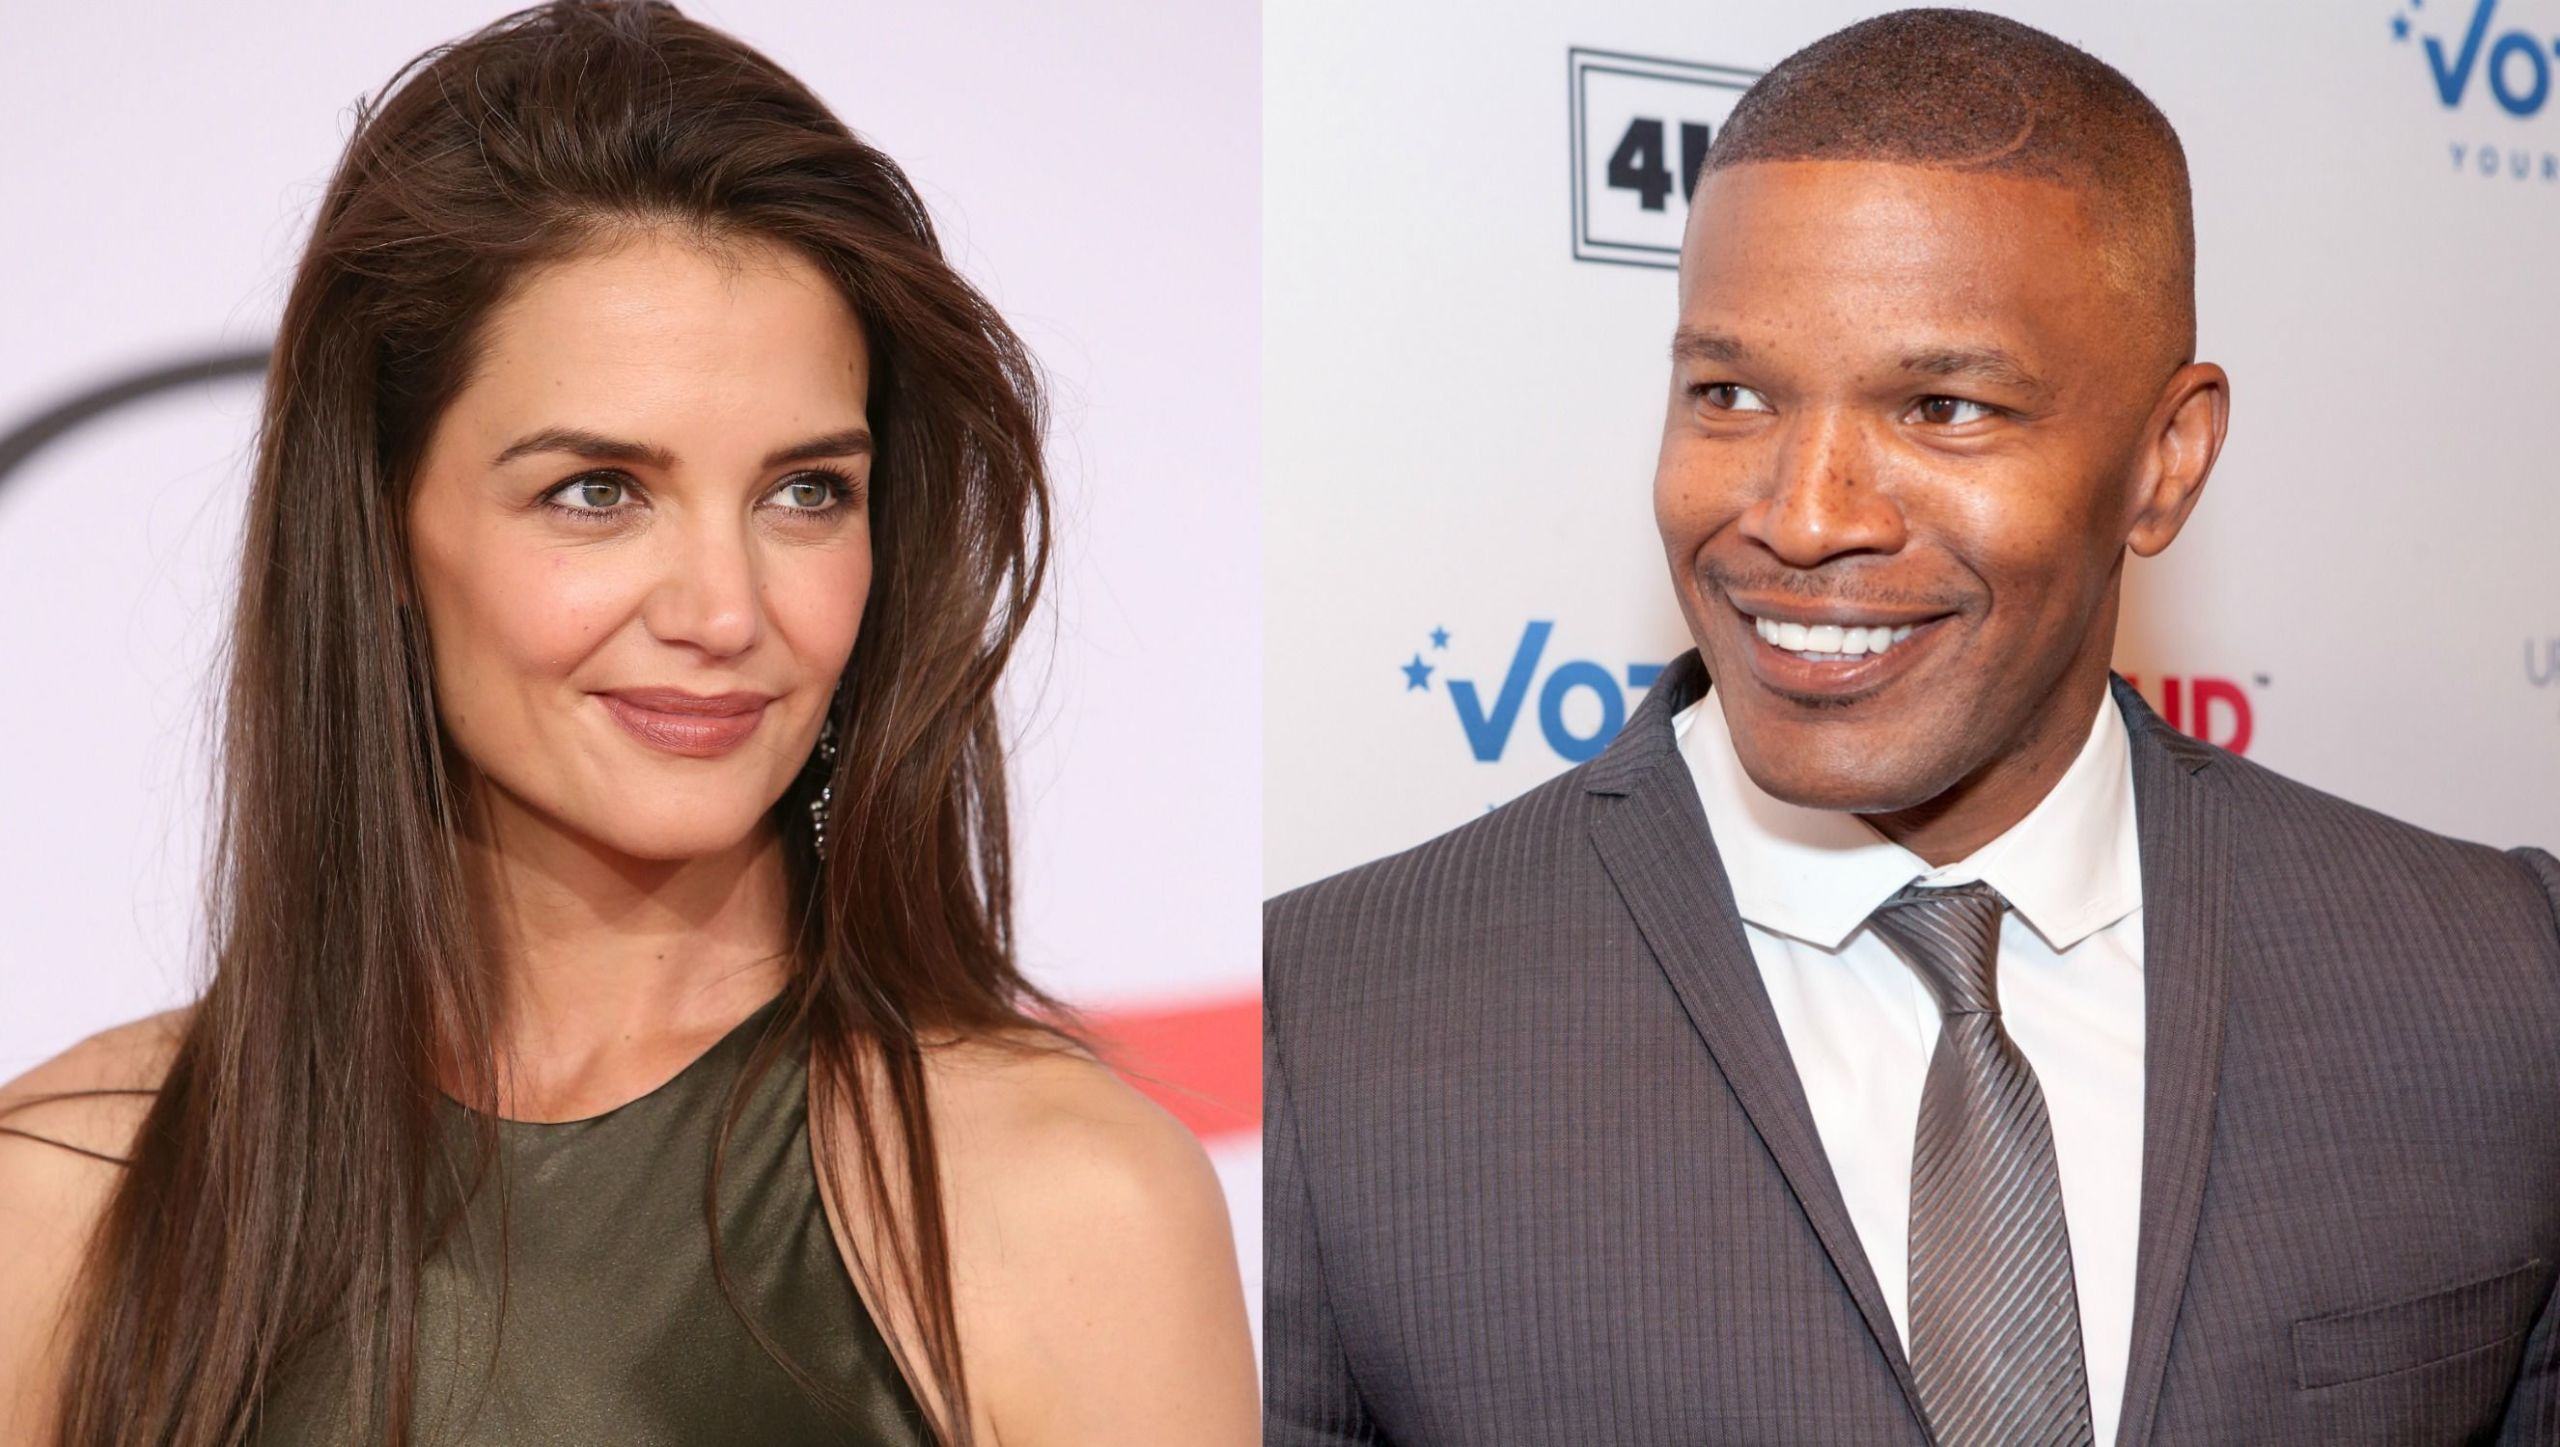 Katie holmes dating now